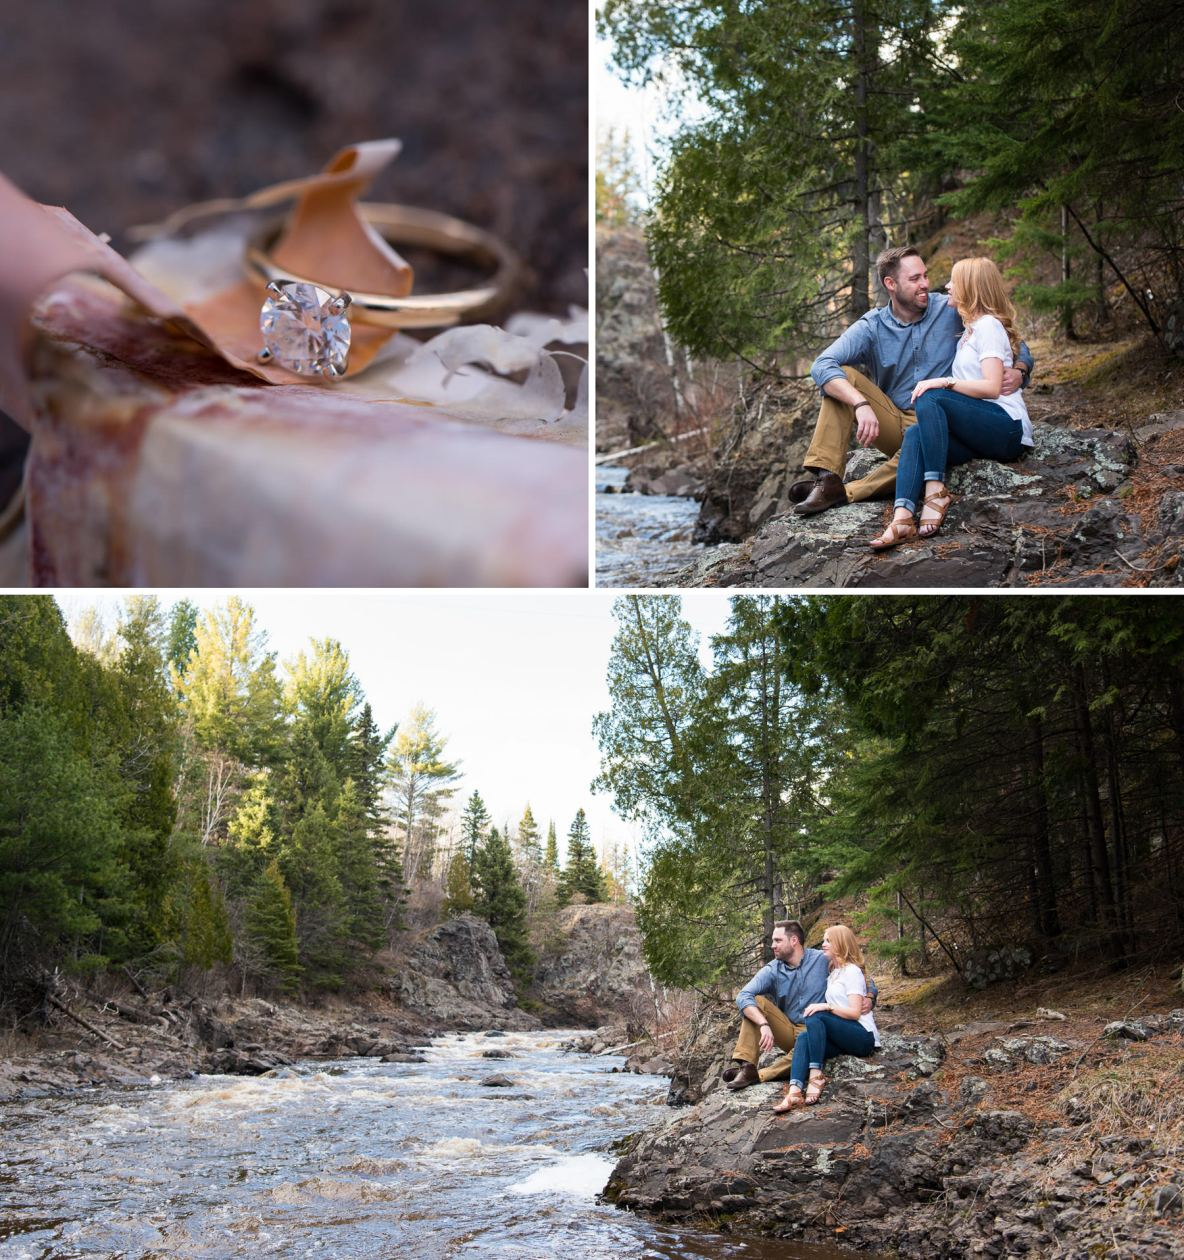 Engagement photos at Lester Park in Duluth, MN.